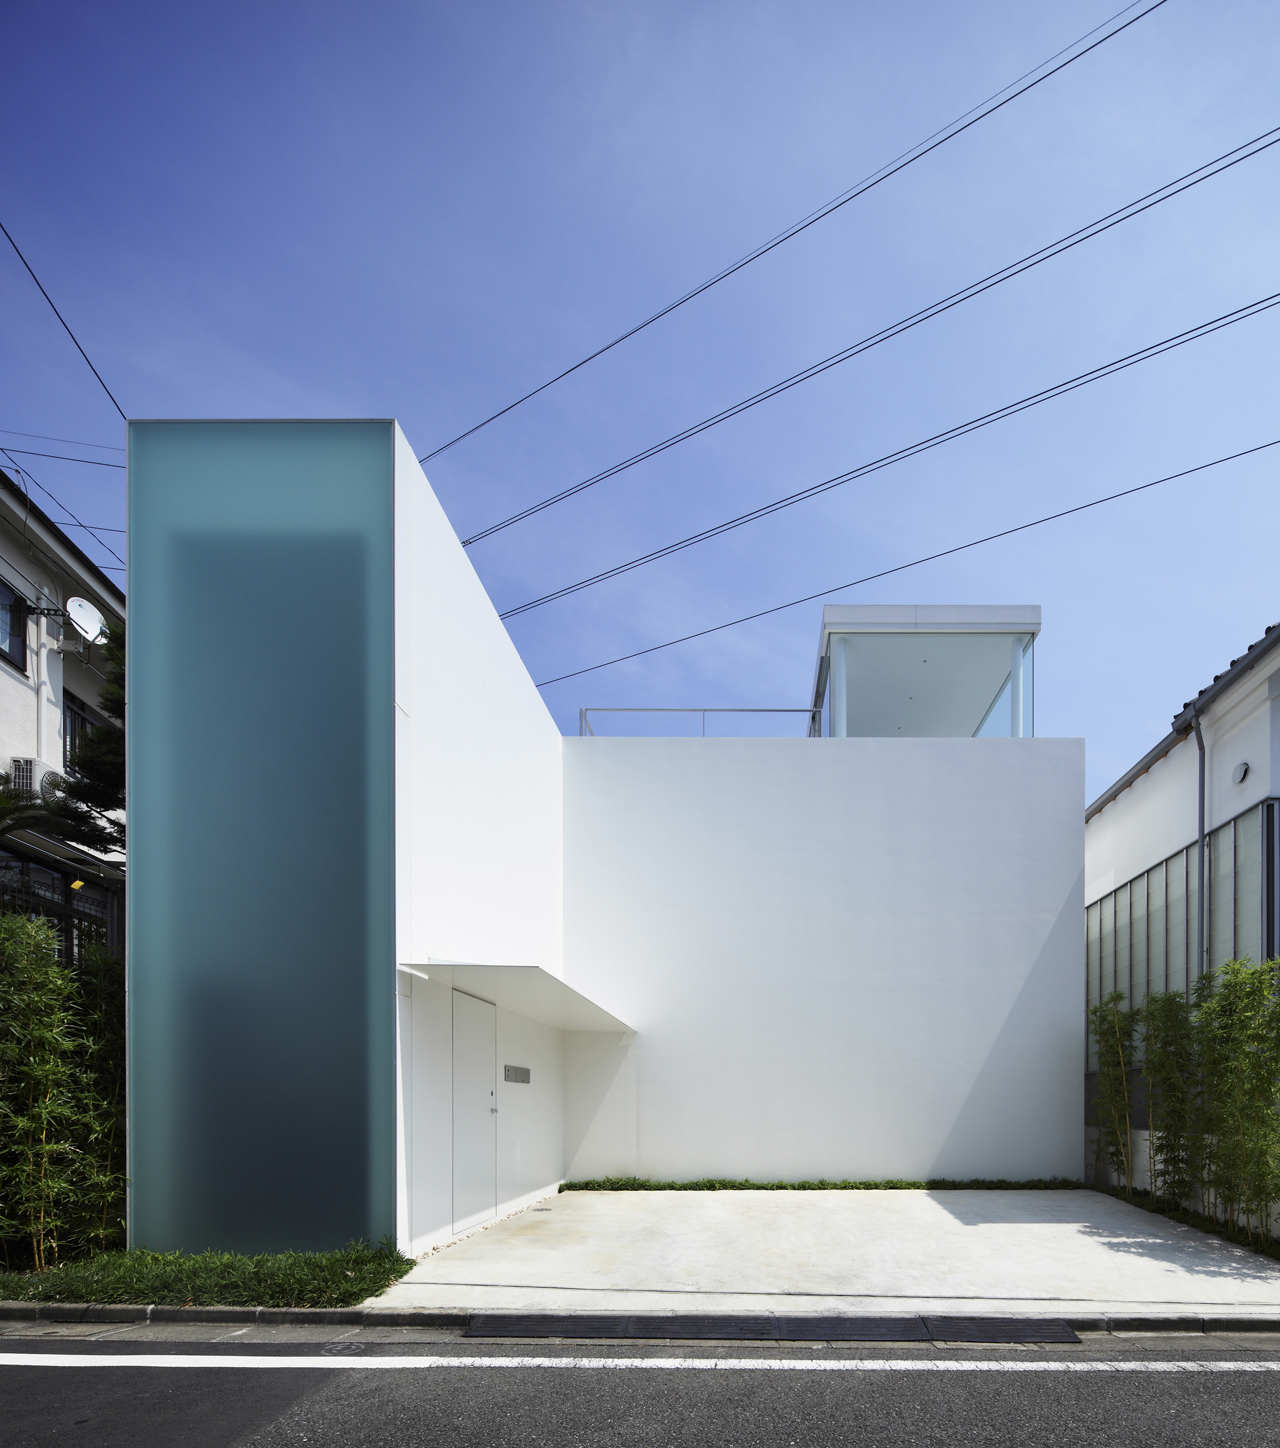 Cube Court House / Shinichi Ogawa & Associates, Cortesia de Shinichi Ogawa & Associates